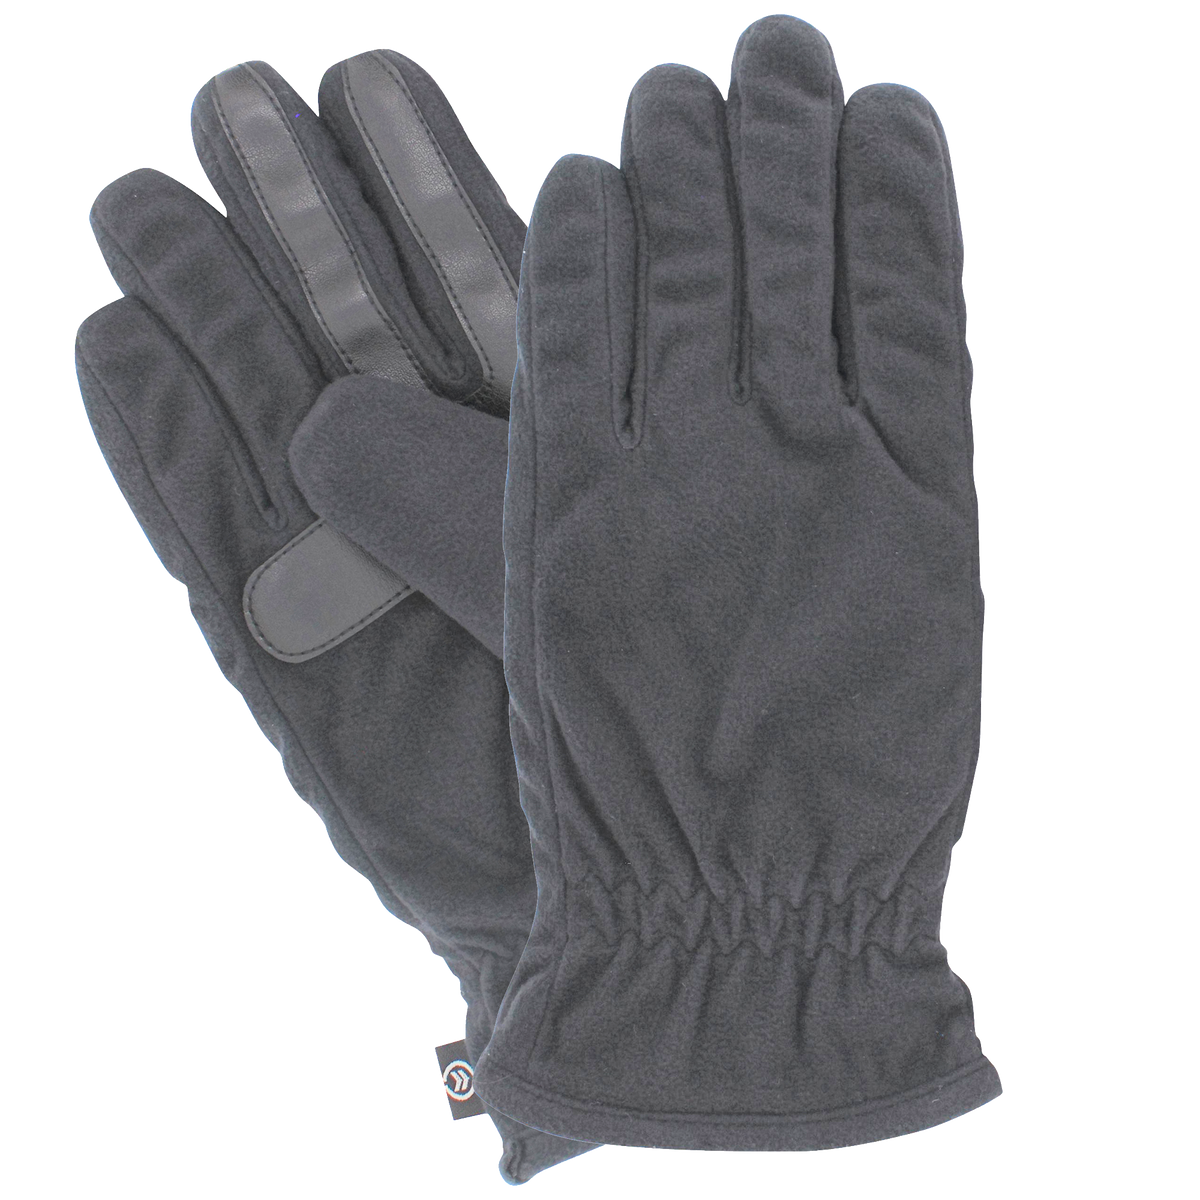 Isotoner Men's SmarTouch® Stretch Fleece Glove with SmartDRI™